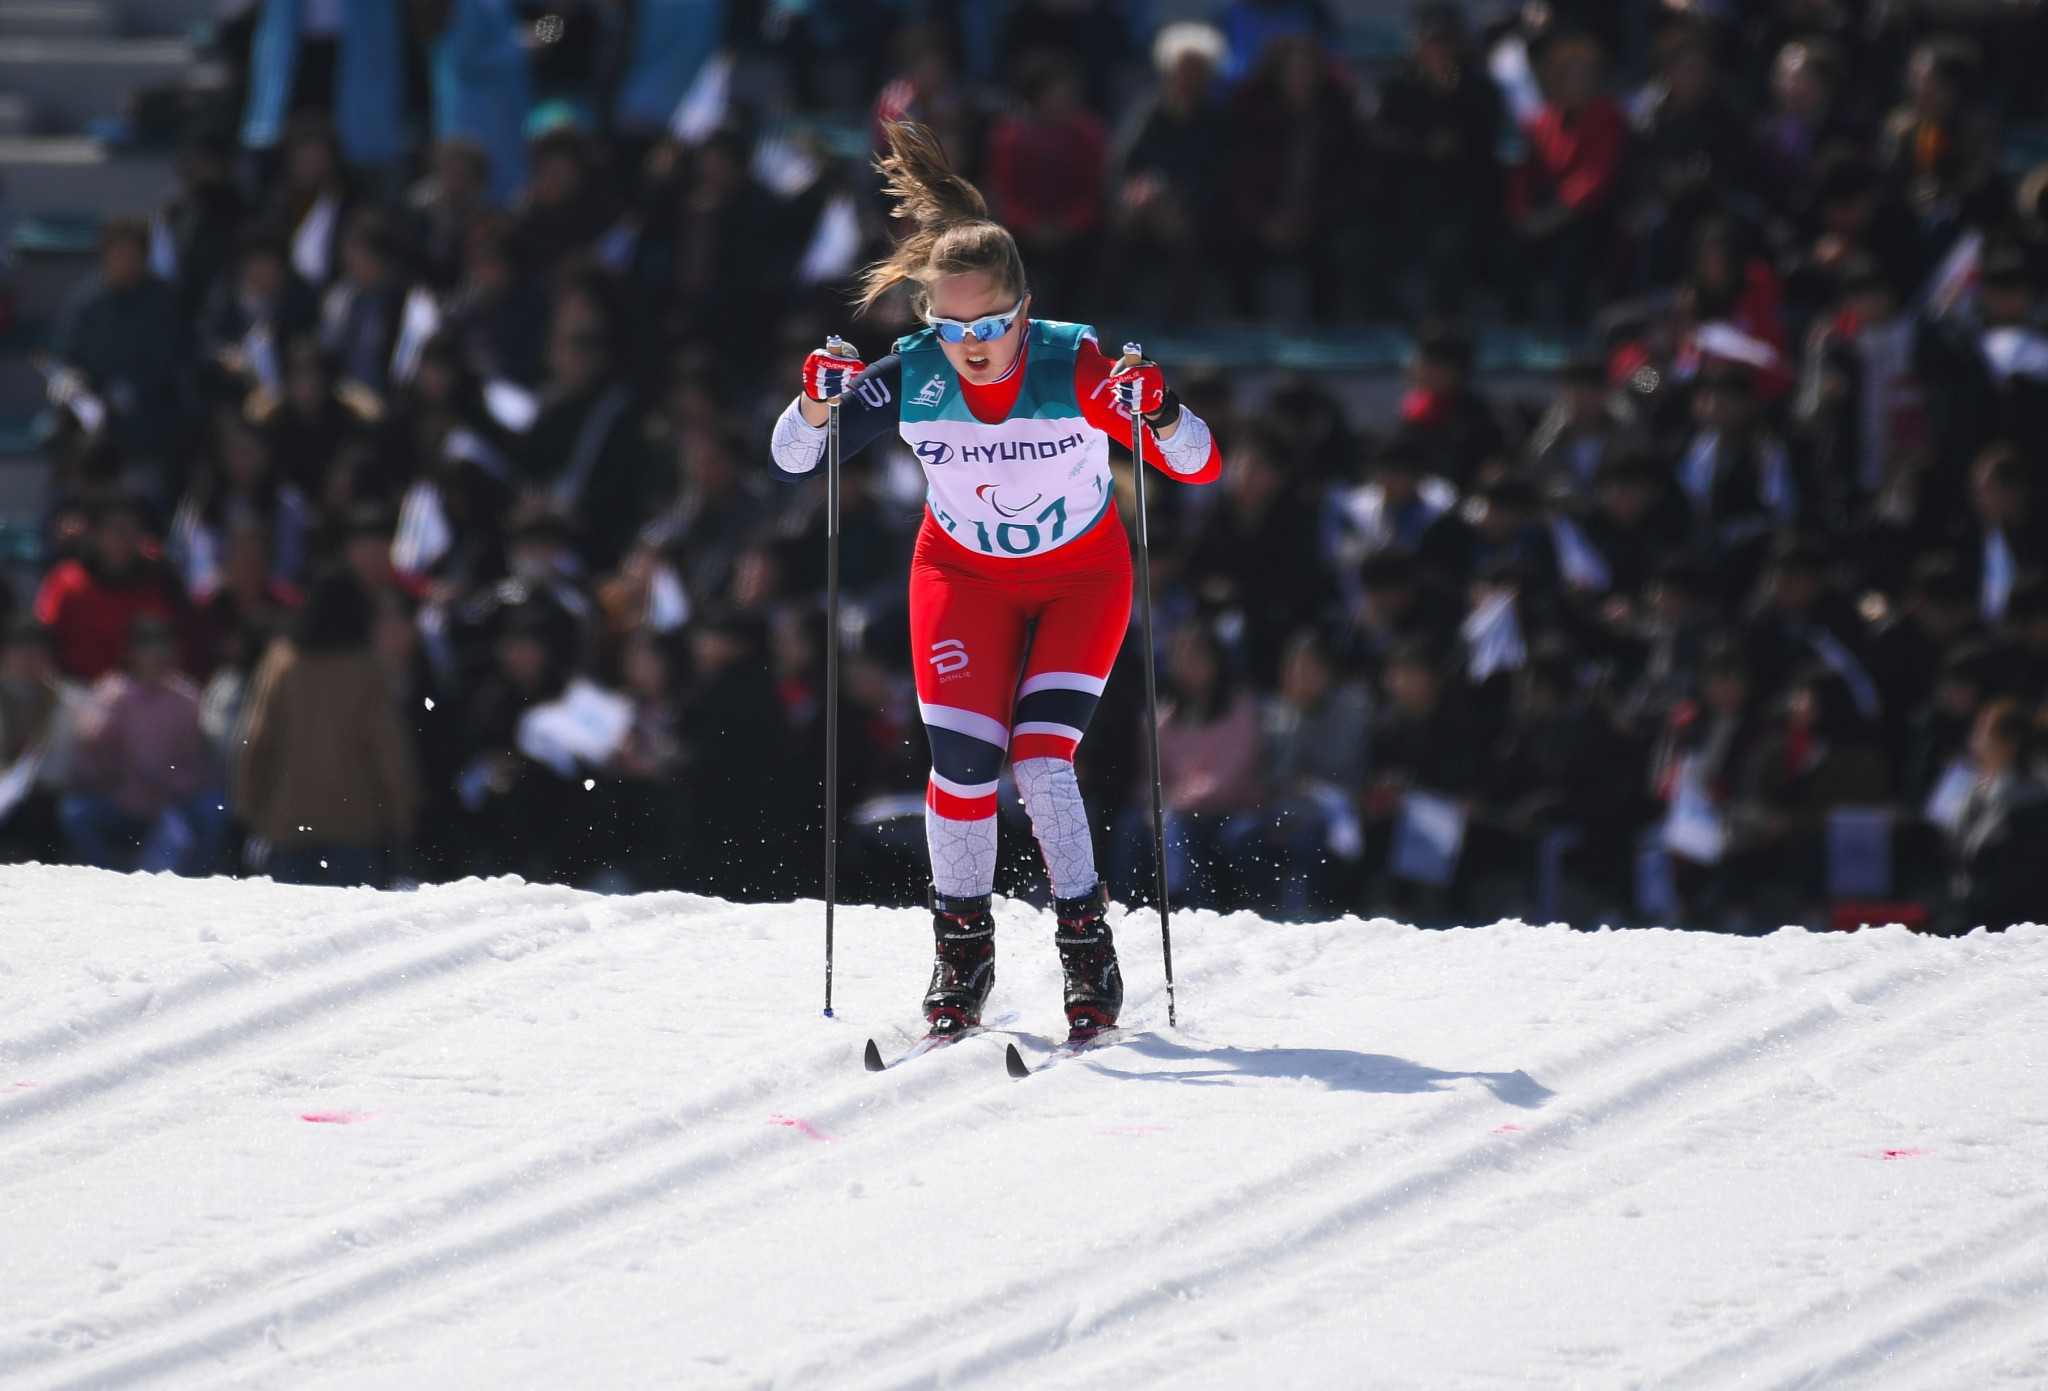 Familiar faces clinch cross-country gold at World Para Nordic Skiing World Cup